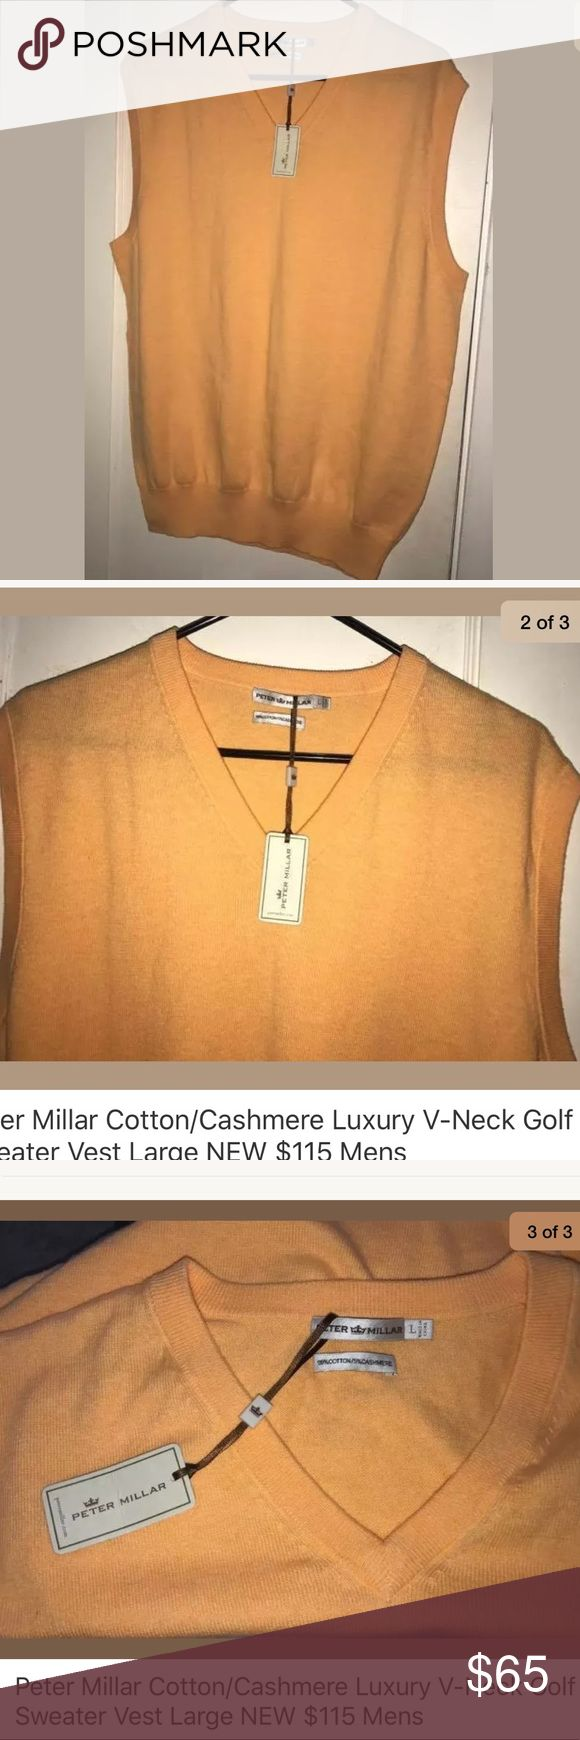 "Peter Millar Cotton/Cashmere Luxury Golf Sweater Peter Millar Cotton/Cashmere Luxury V-Neck Golf Sweater Vest Large NEW, $115  Mens Style #MS12S21 MSRP:  $115.00  Luxury Blend Lightweight  Ribbed waist, neck and sleeve   Large  Light Orange  95% Cotton; 5% Cashmere  Armpit to Armpit:  22""   Body Length:  28""  New With Tags  Smoke and pets free home Peter Millar Sweaters"